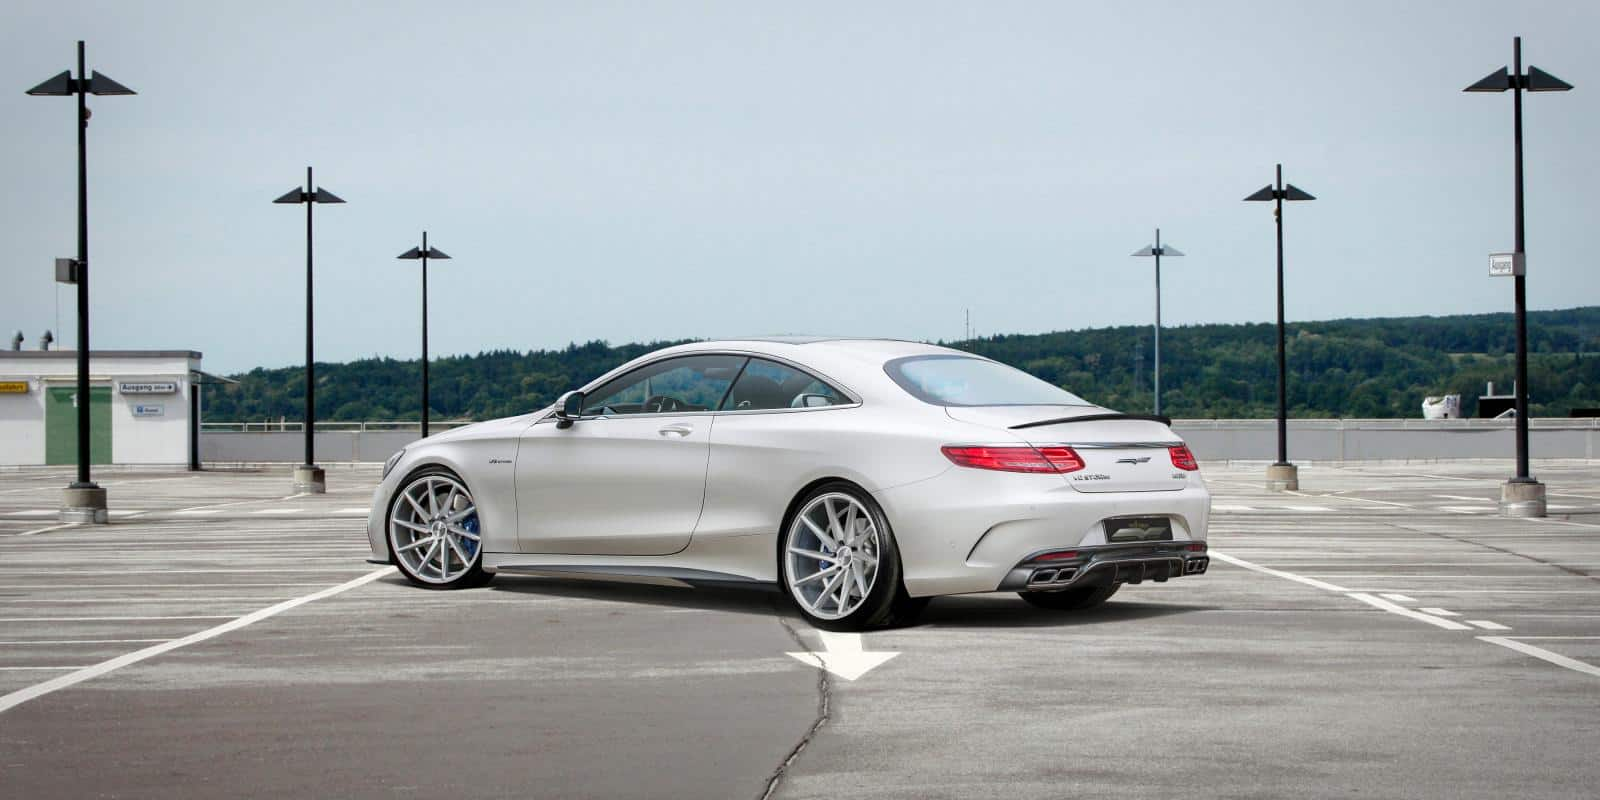 Jante s63 amg